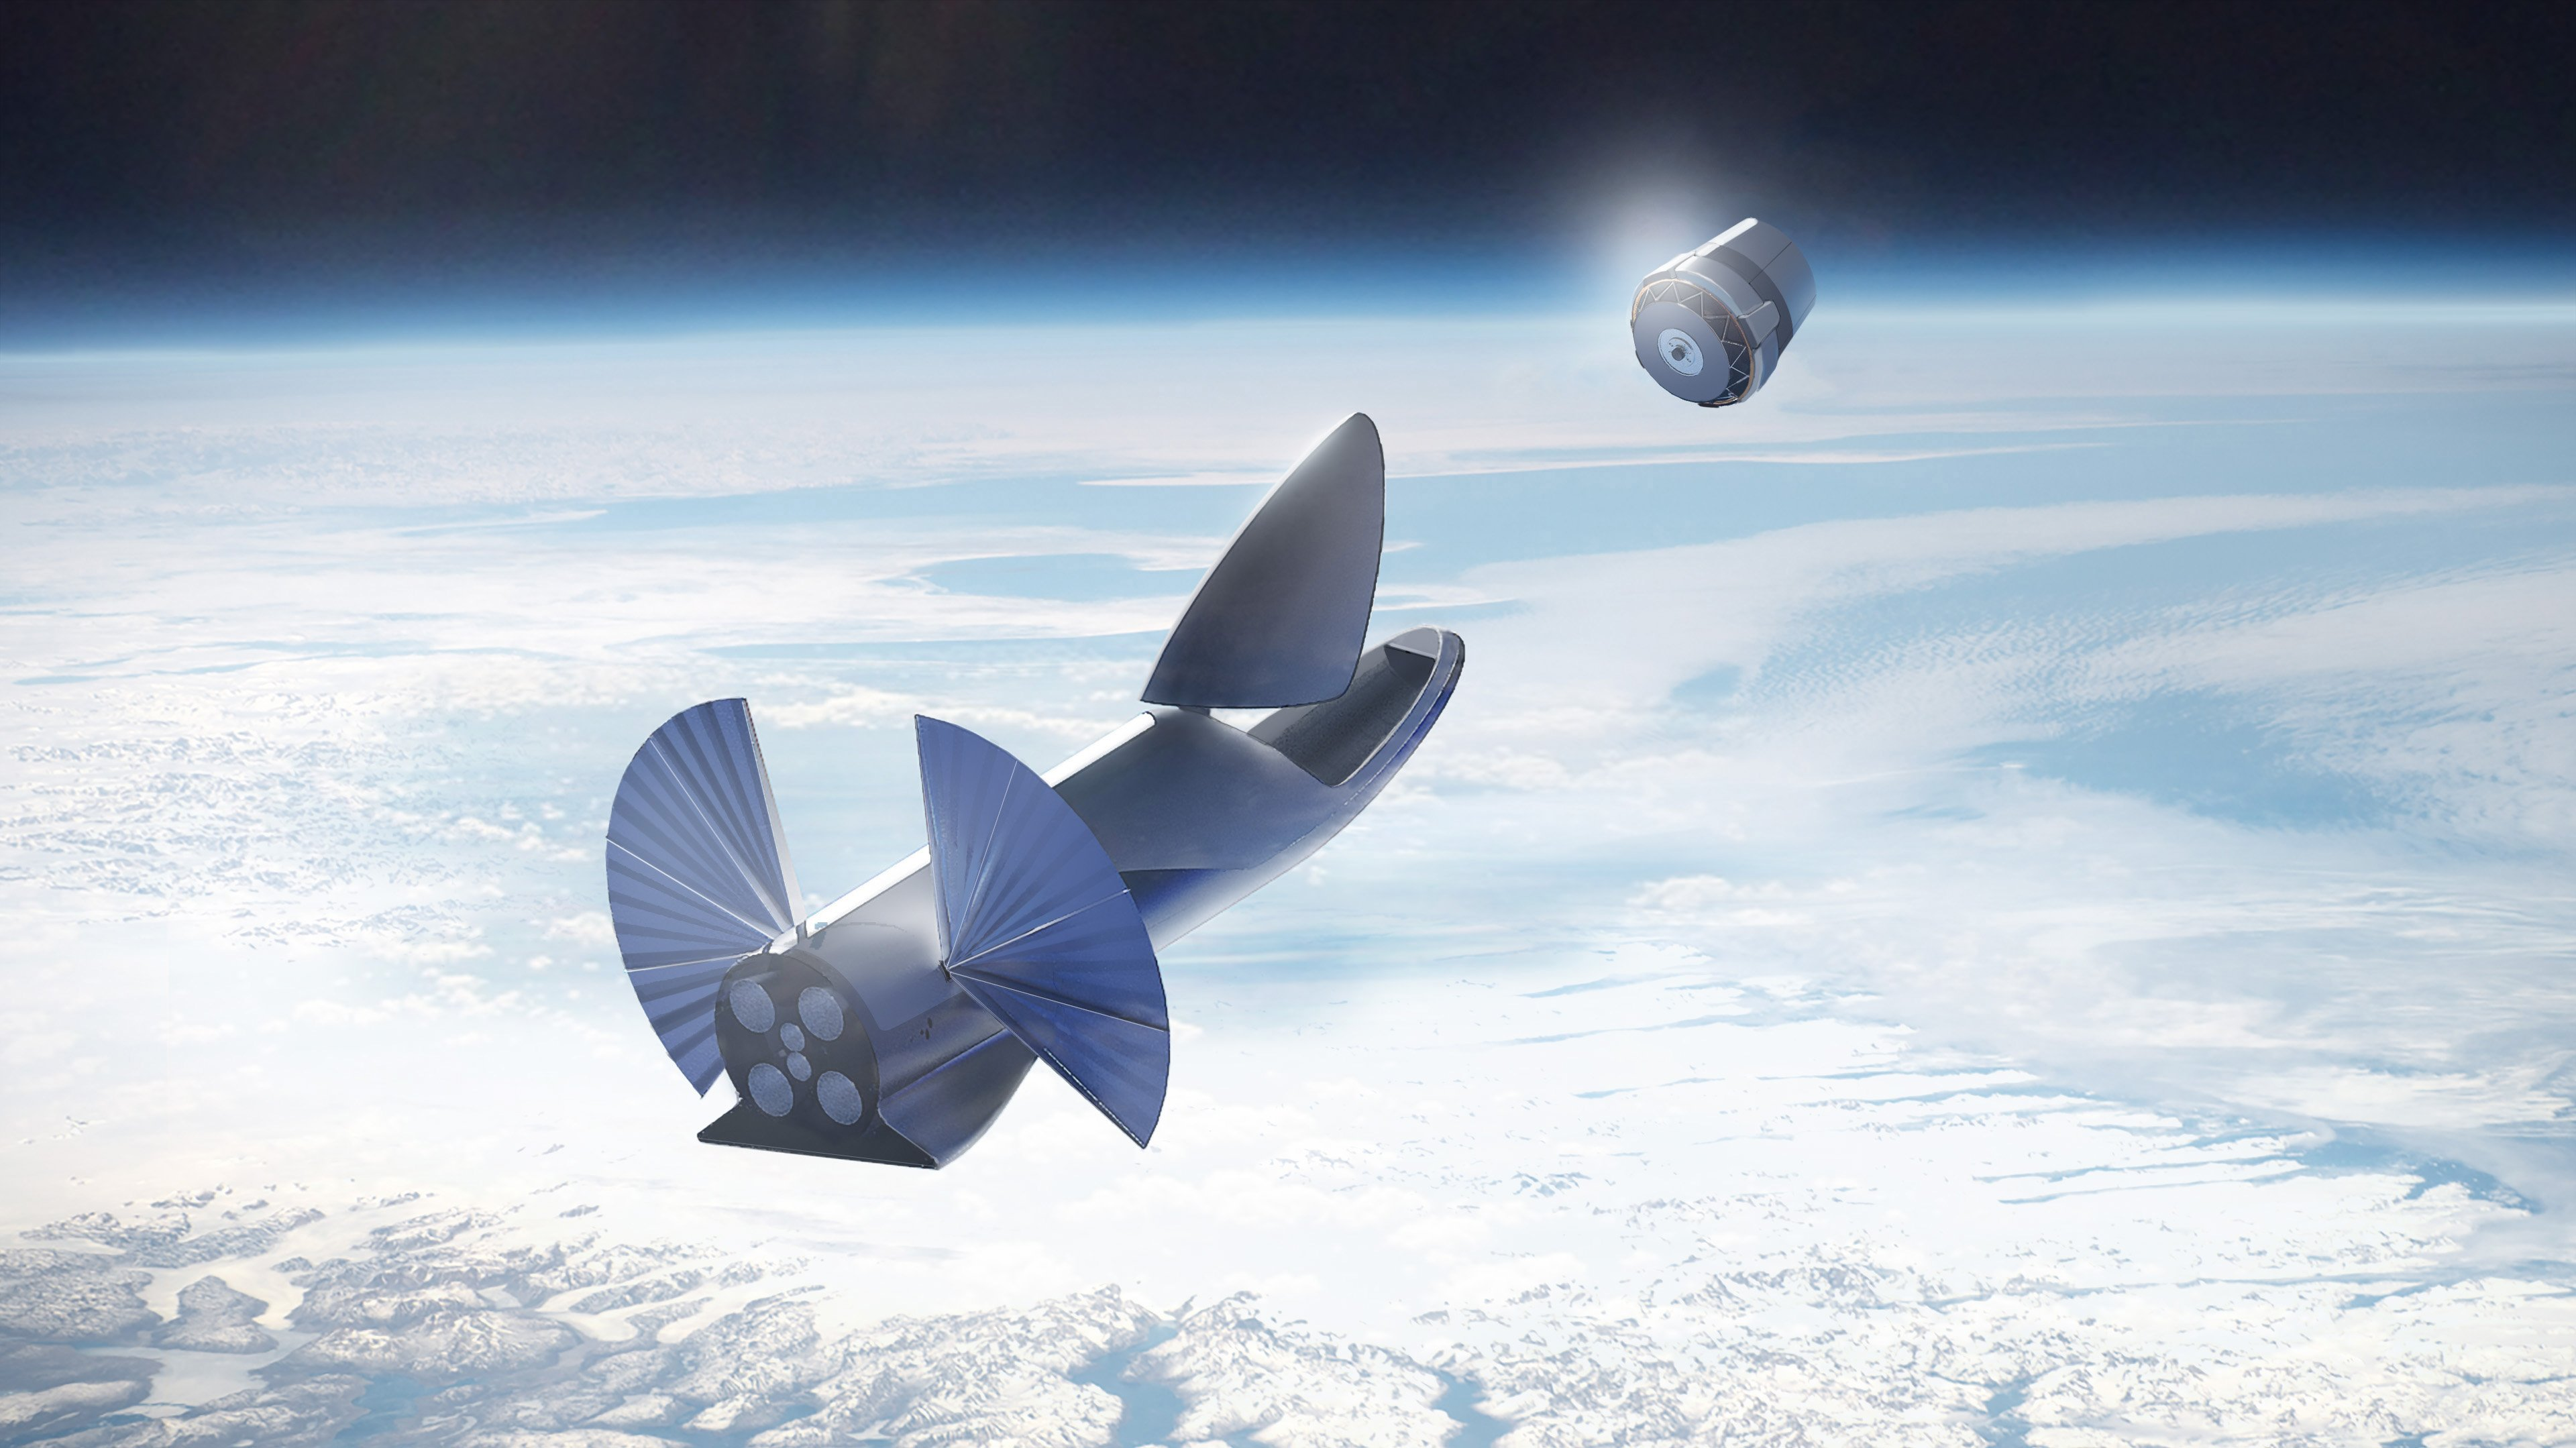 Nasa Funds Study On Spacex Bfr As Option For Massive Space Telescope